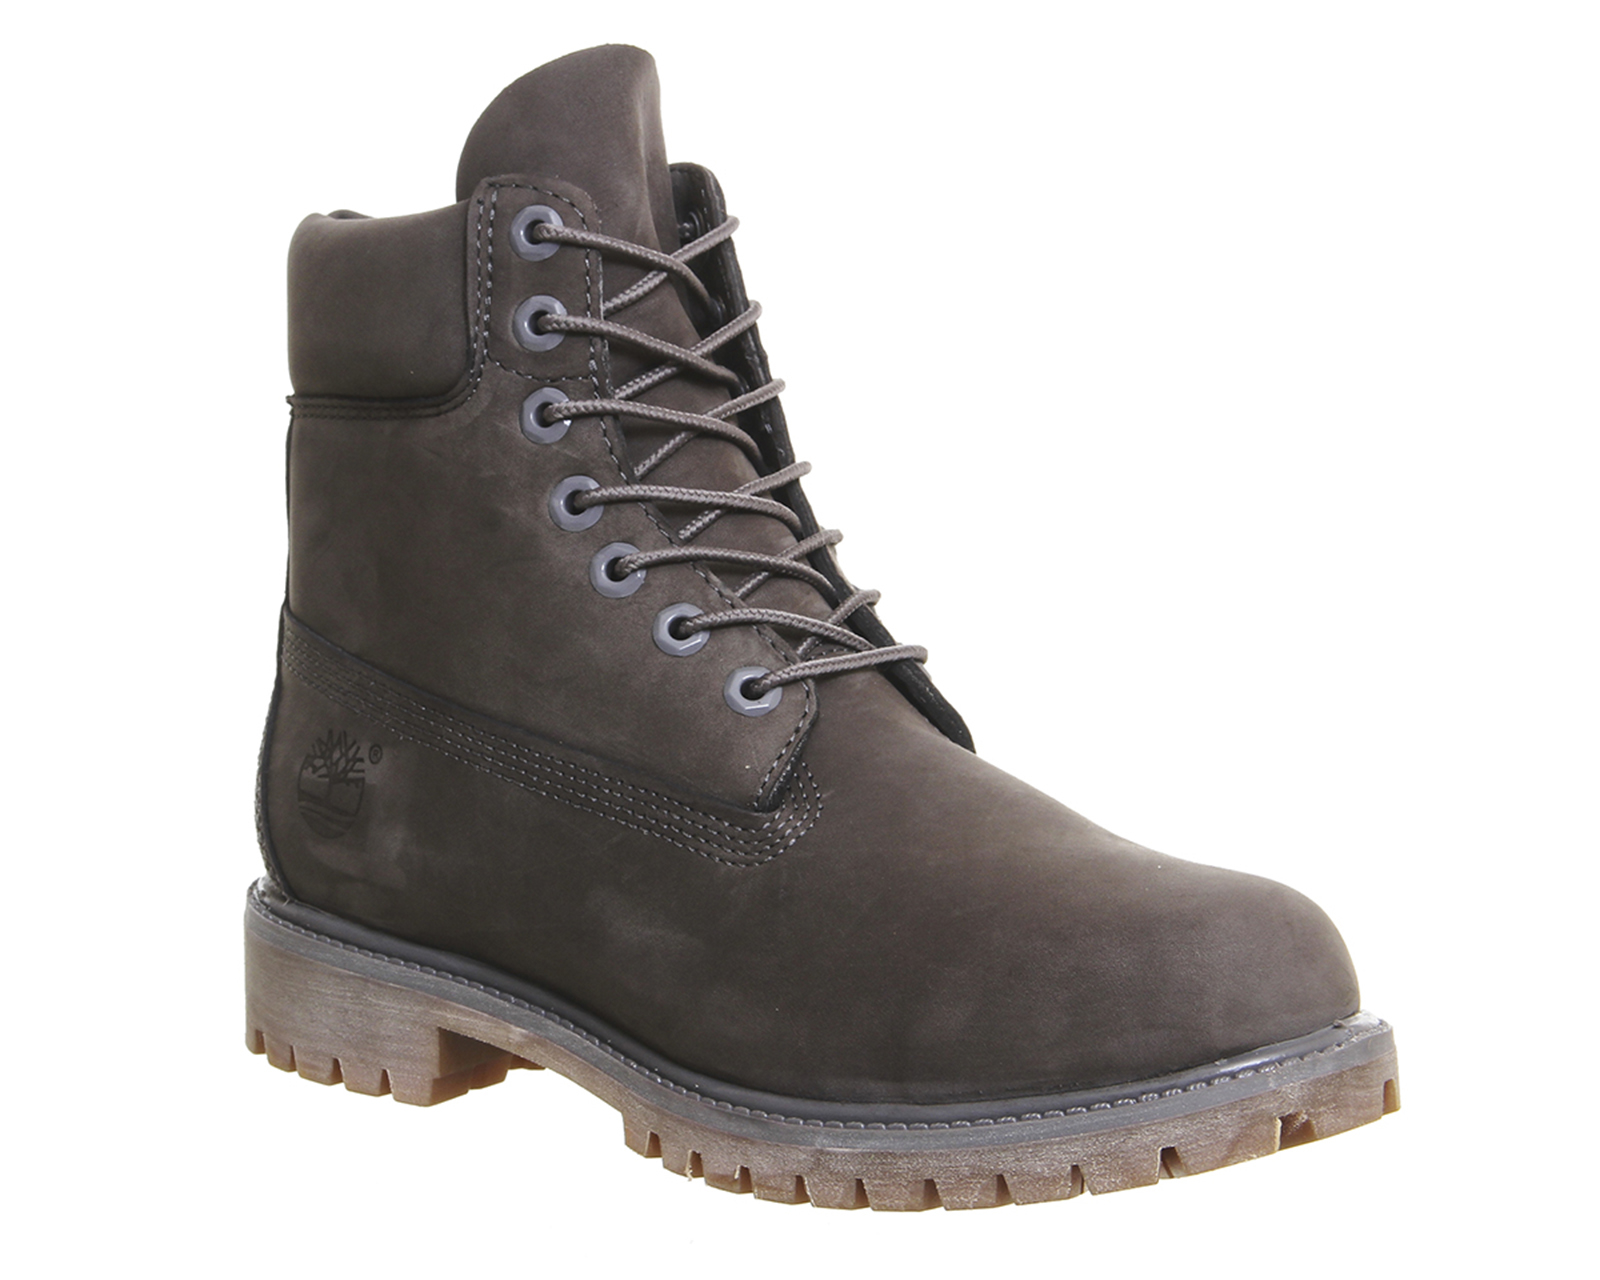 timberland 6 in buck boots in gray for men grey lyst. Black Bedroom Furniture Sets. Home Design Ideas